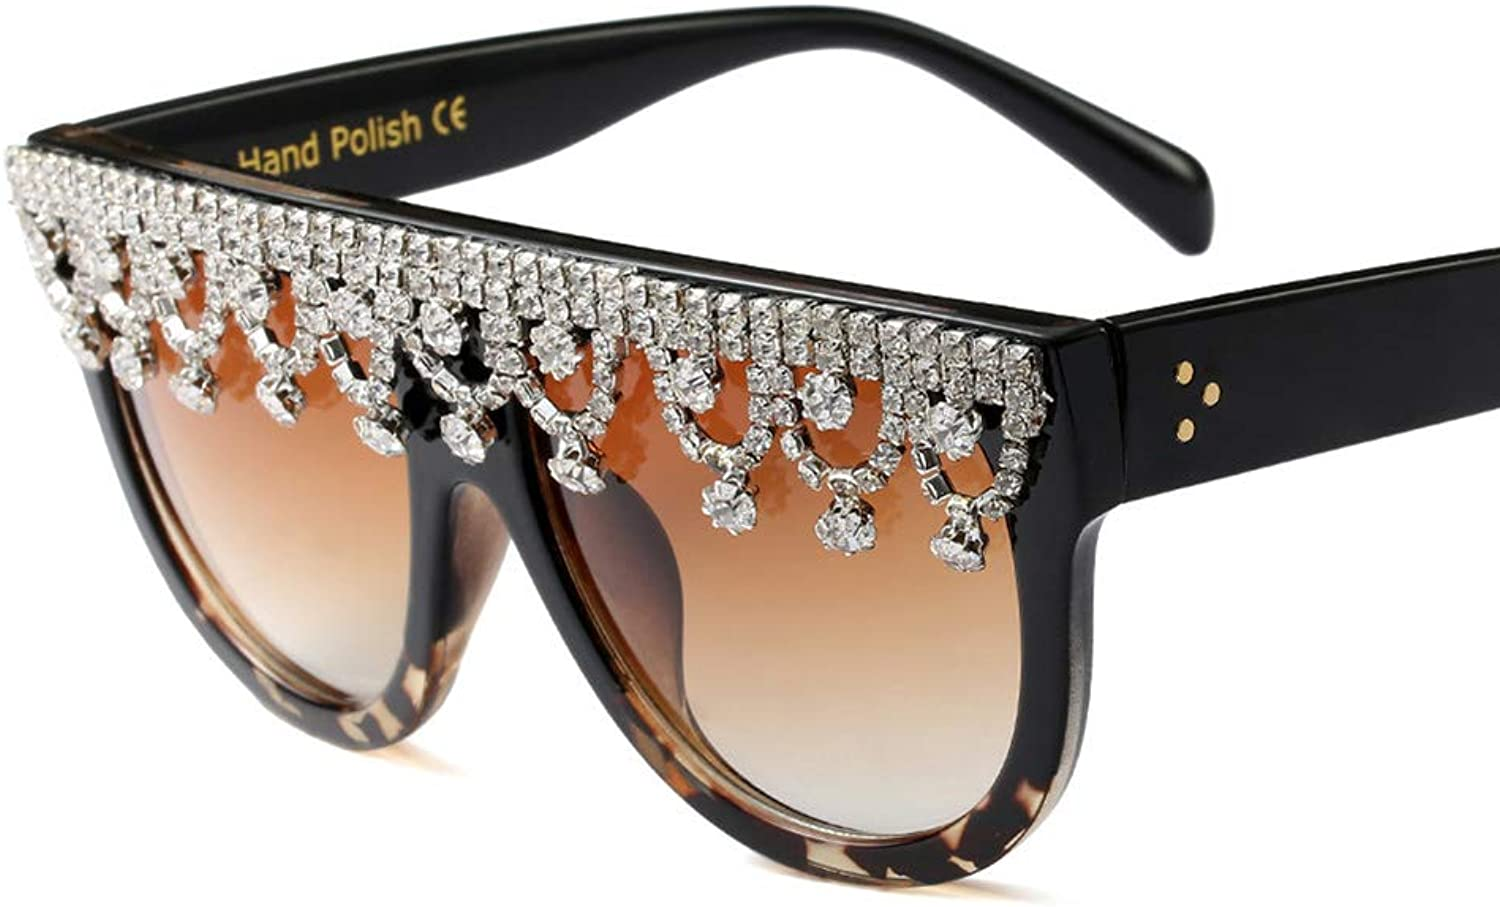 Womens's Large Frame Sunglasses,Rhinestone Decorated Eye Glasses Inspired, Gradient Mirrored Lens Gifts for Women,UV400 Predection Driving Eyewear,Blackleopard